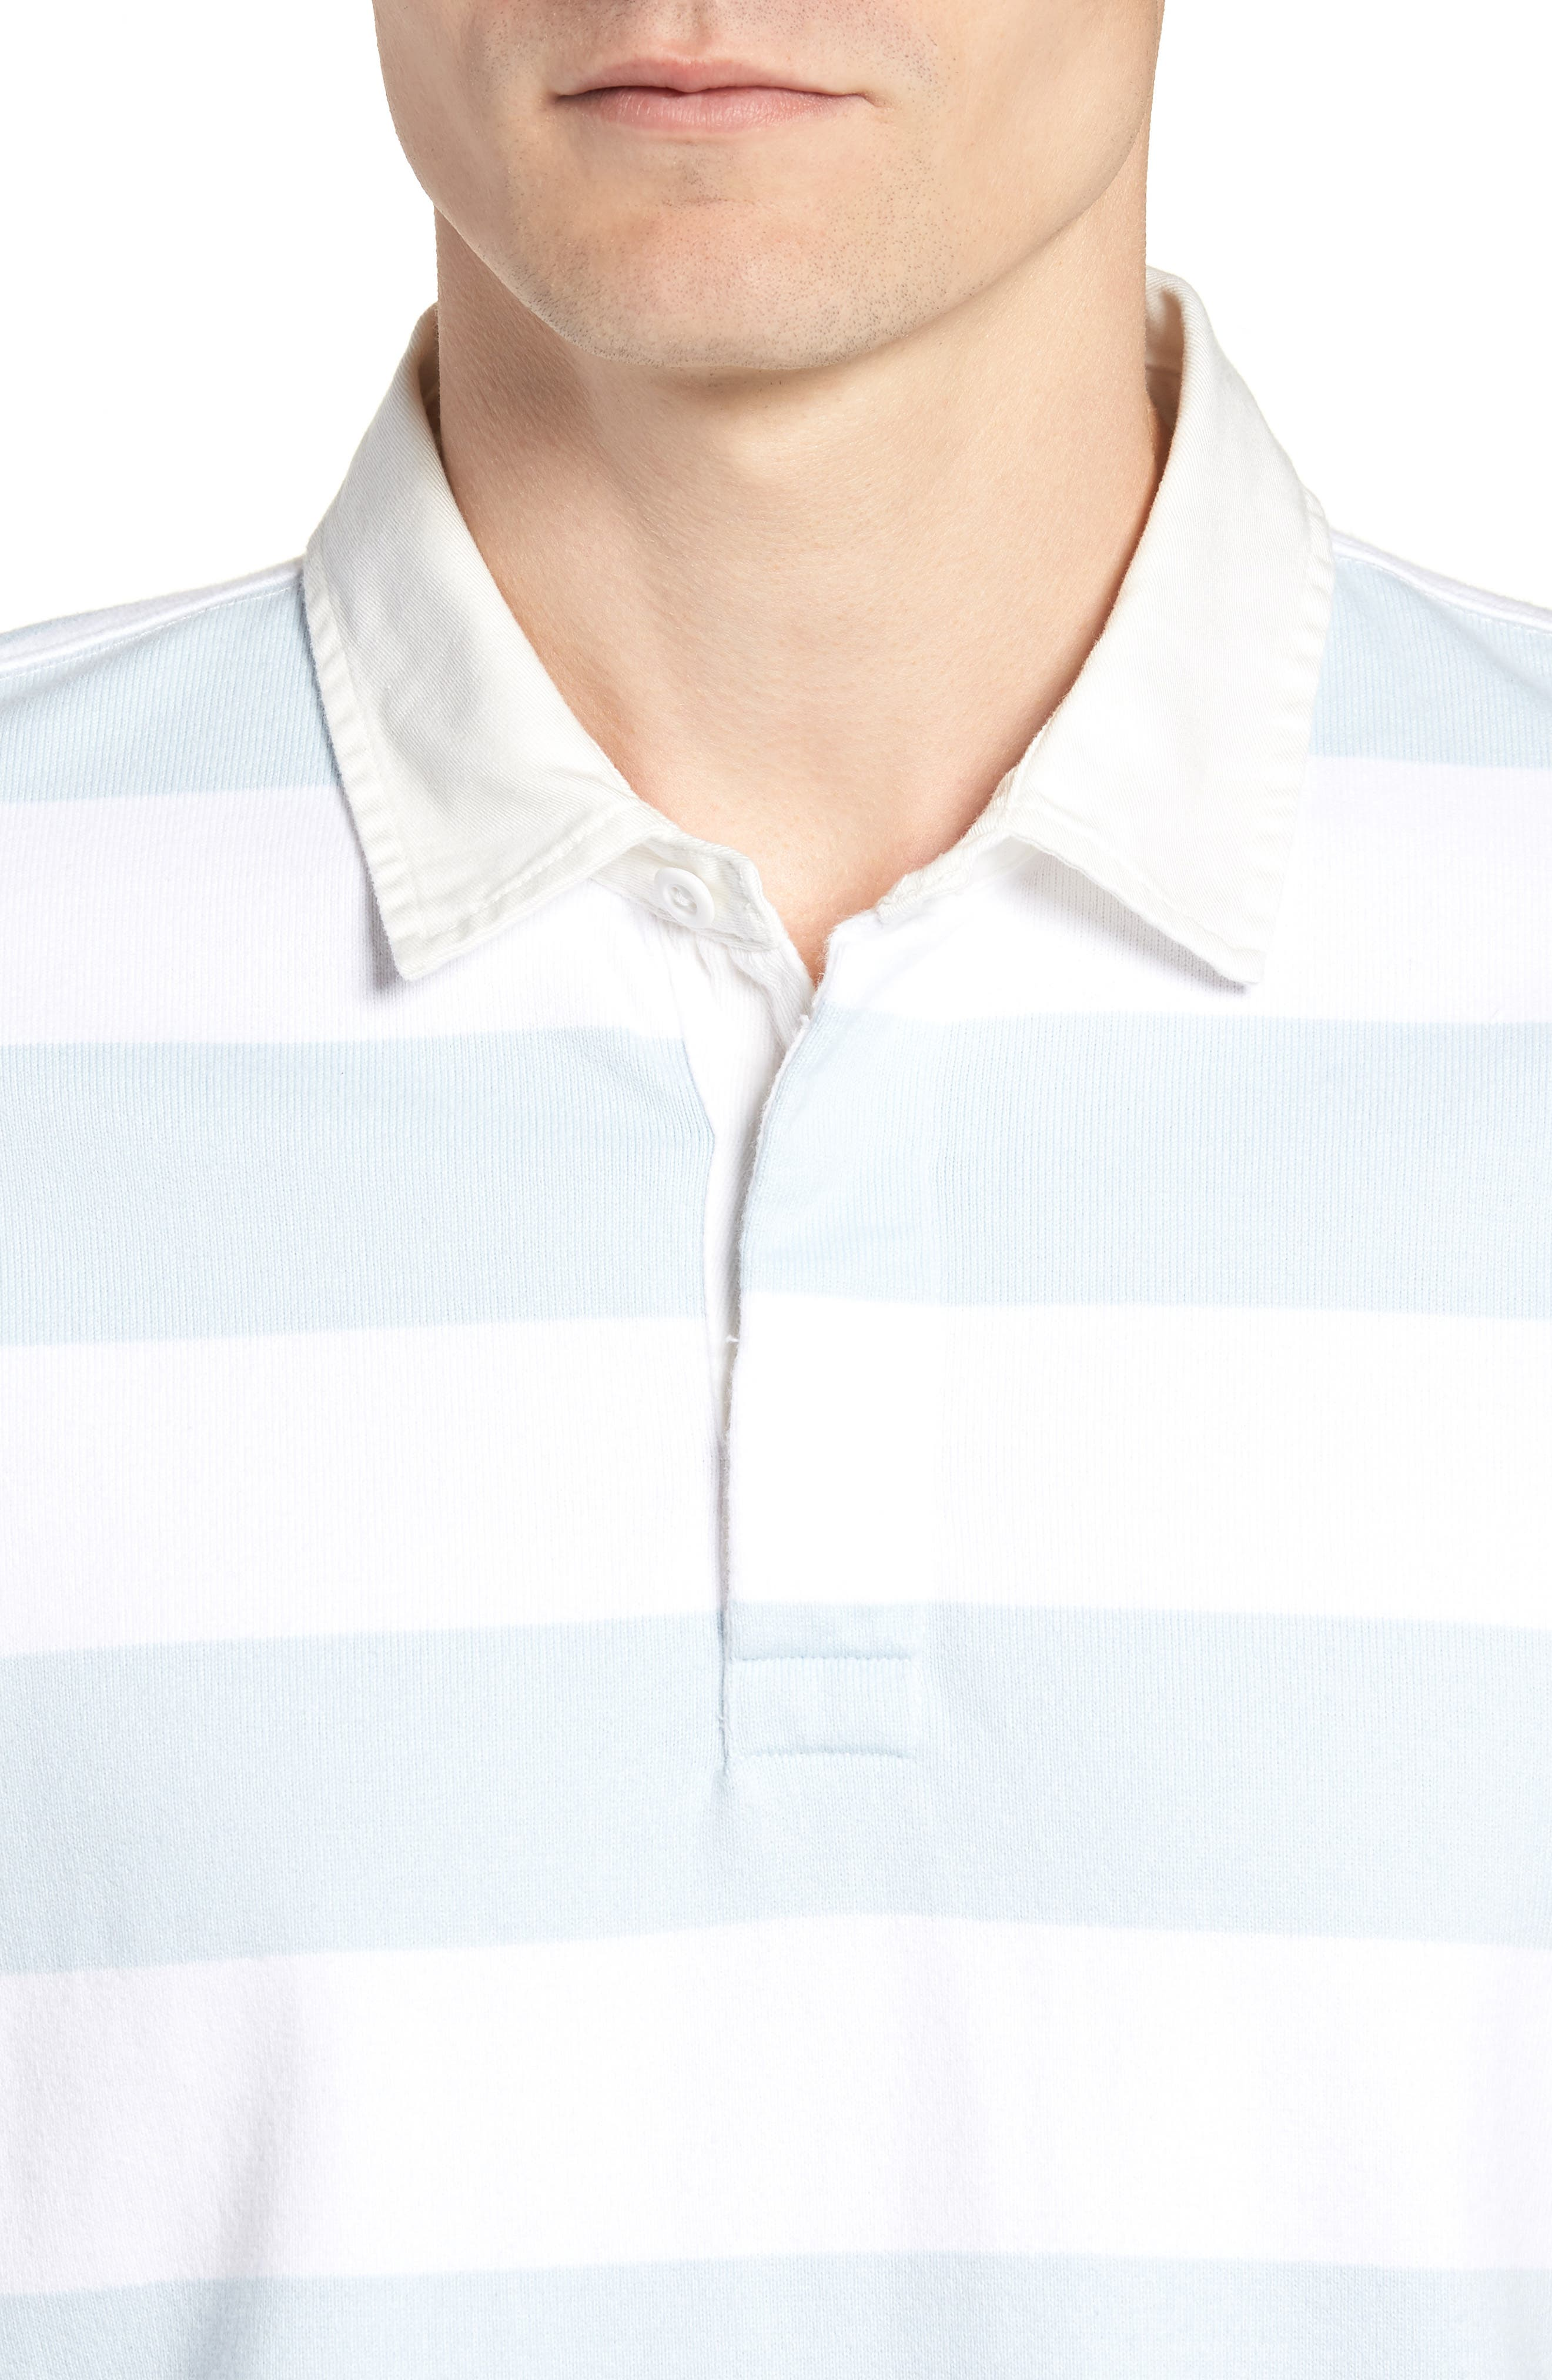 J.CREW,                             1984 Rugby Shirt,                             Alternate thumbnail 4, color,                             100